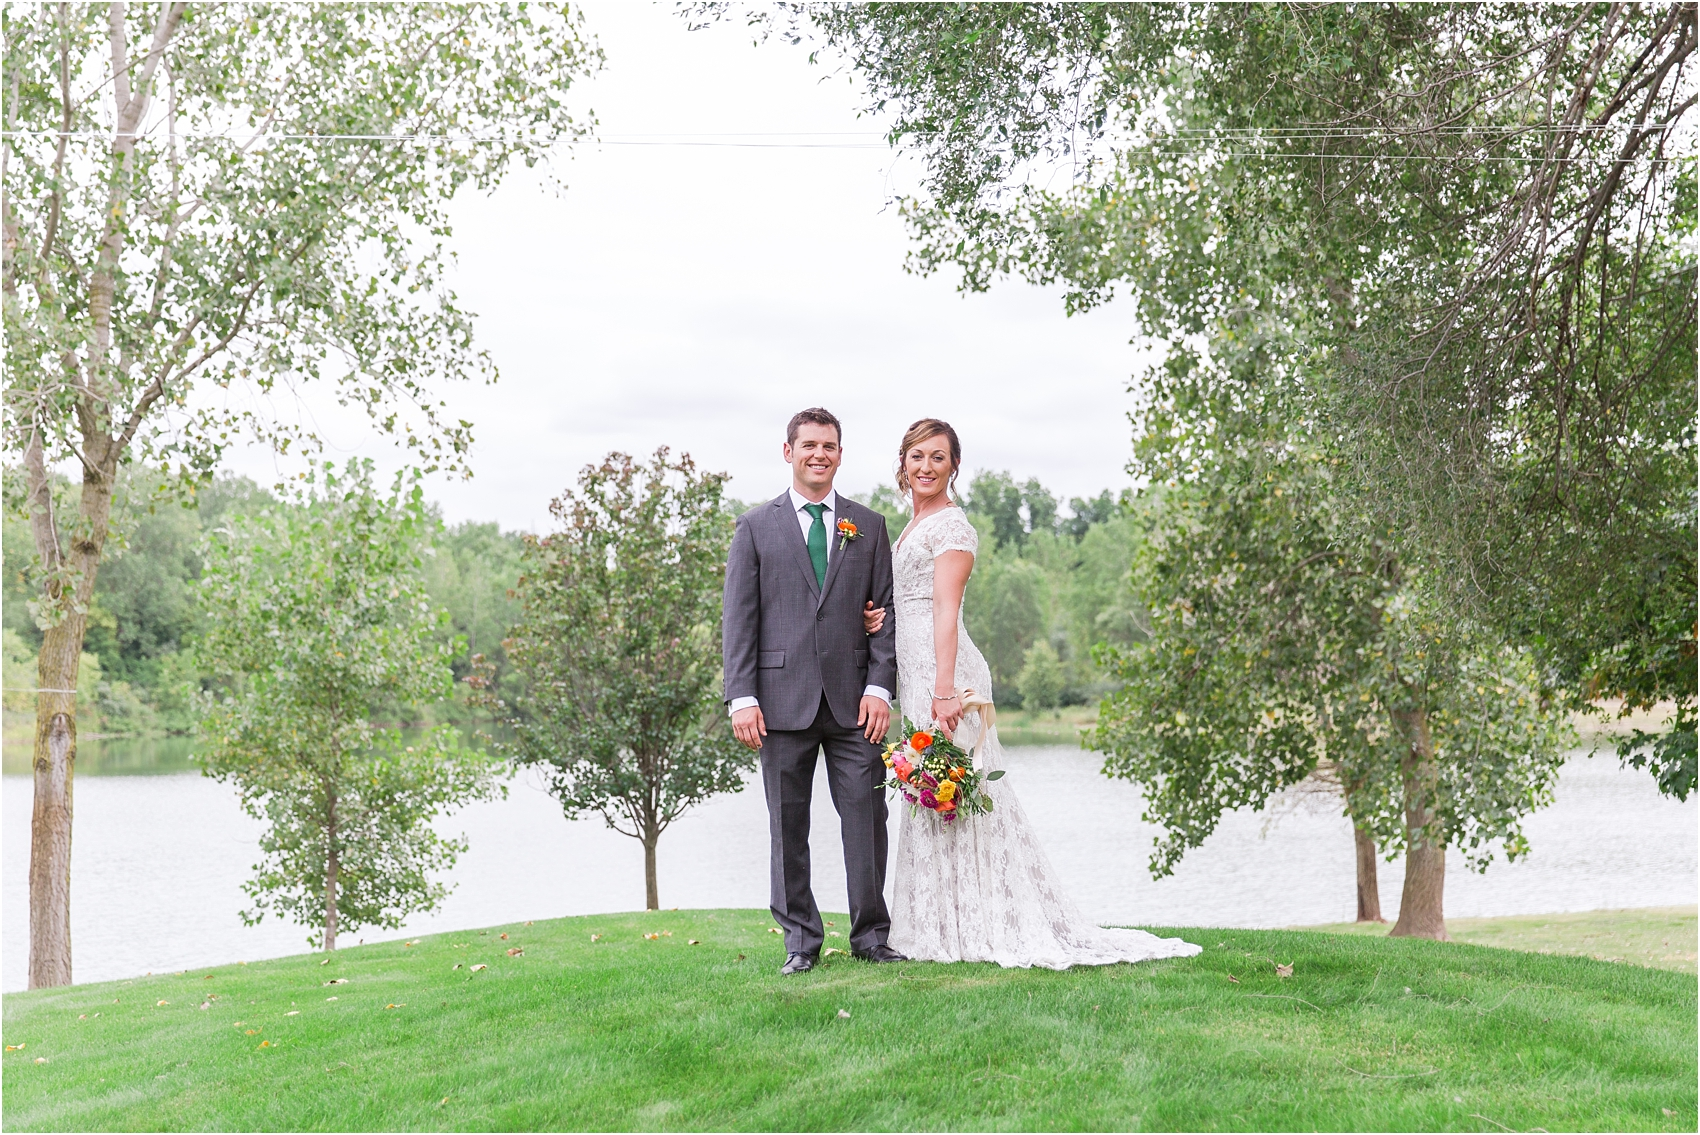 romantic-intimate-backyard-wedding-photos-at-private-estate-in-ann-arbor-mi-by-courtney-carolyn-photography_0056.jpg